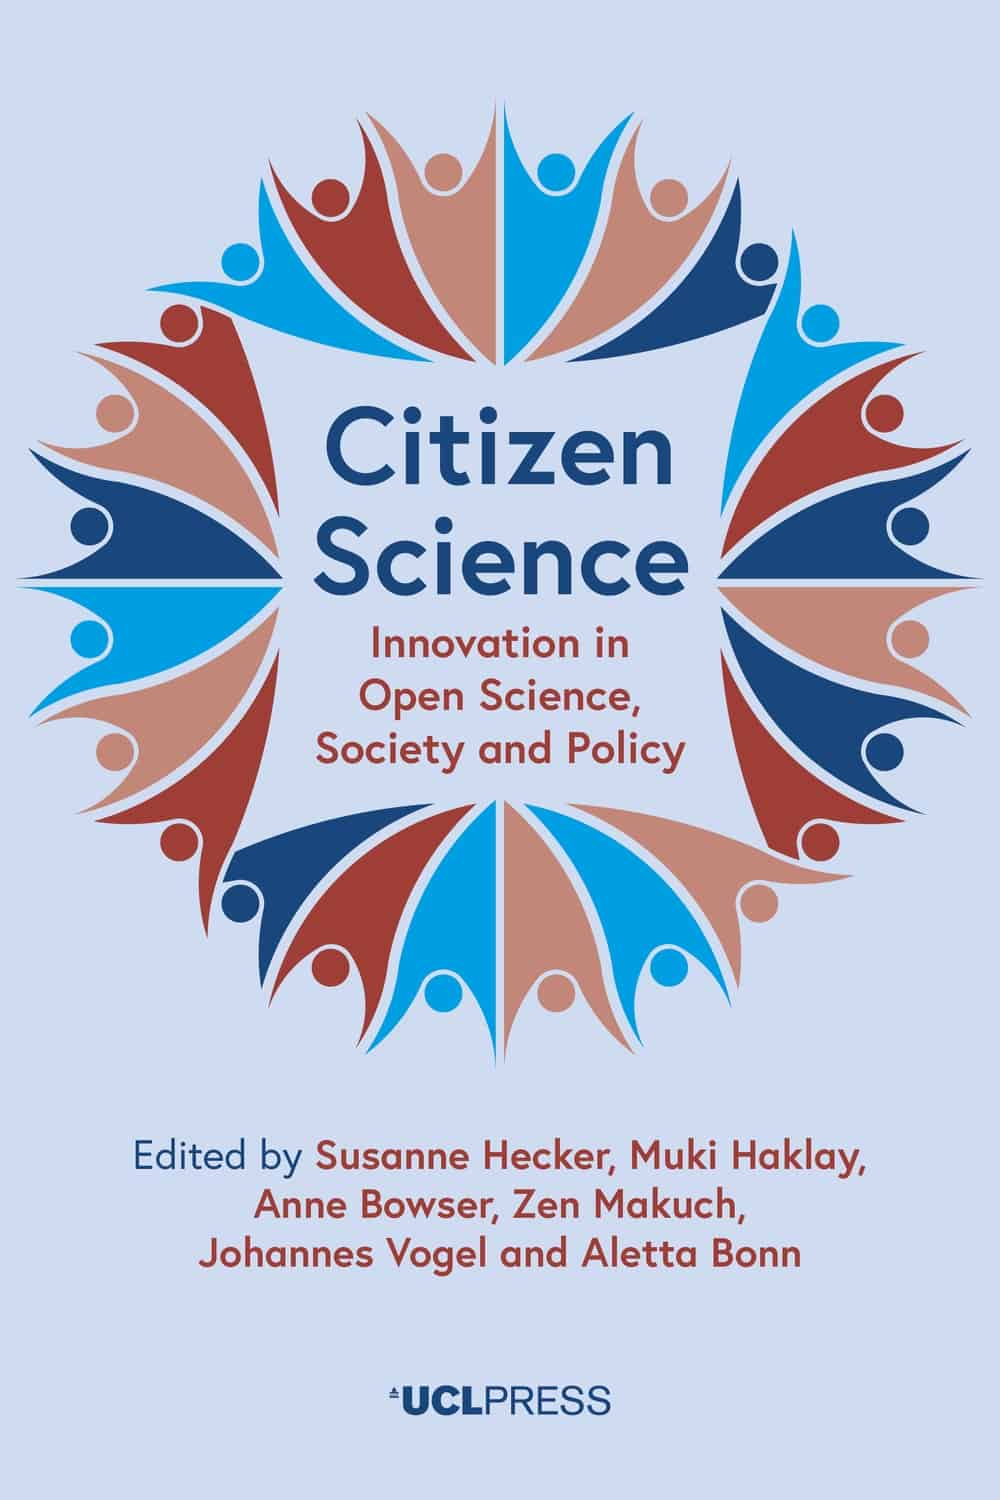 A Book Review — Citizen Science: Co-optation Instead of Cooperation?